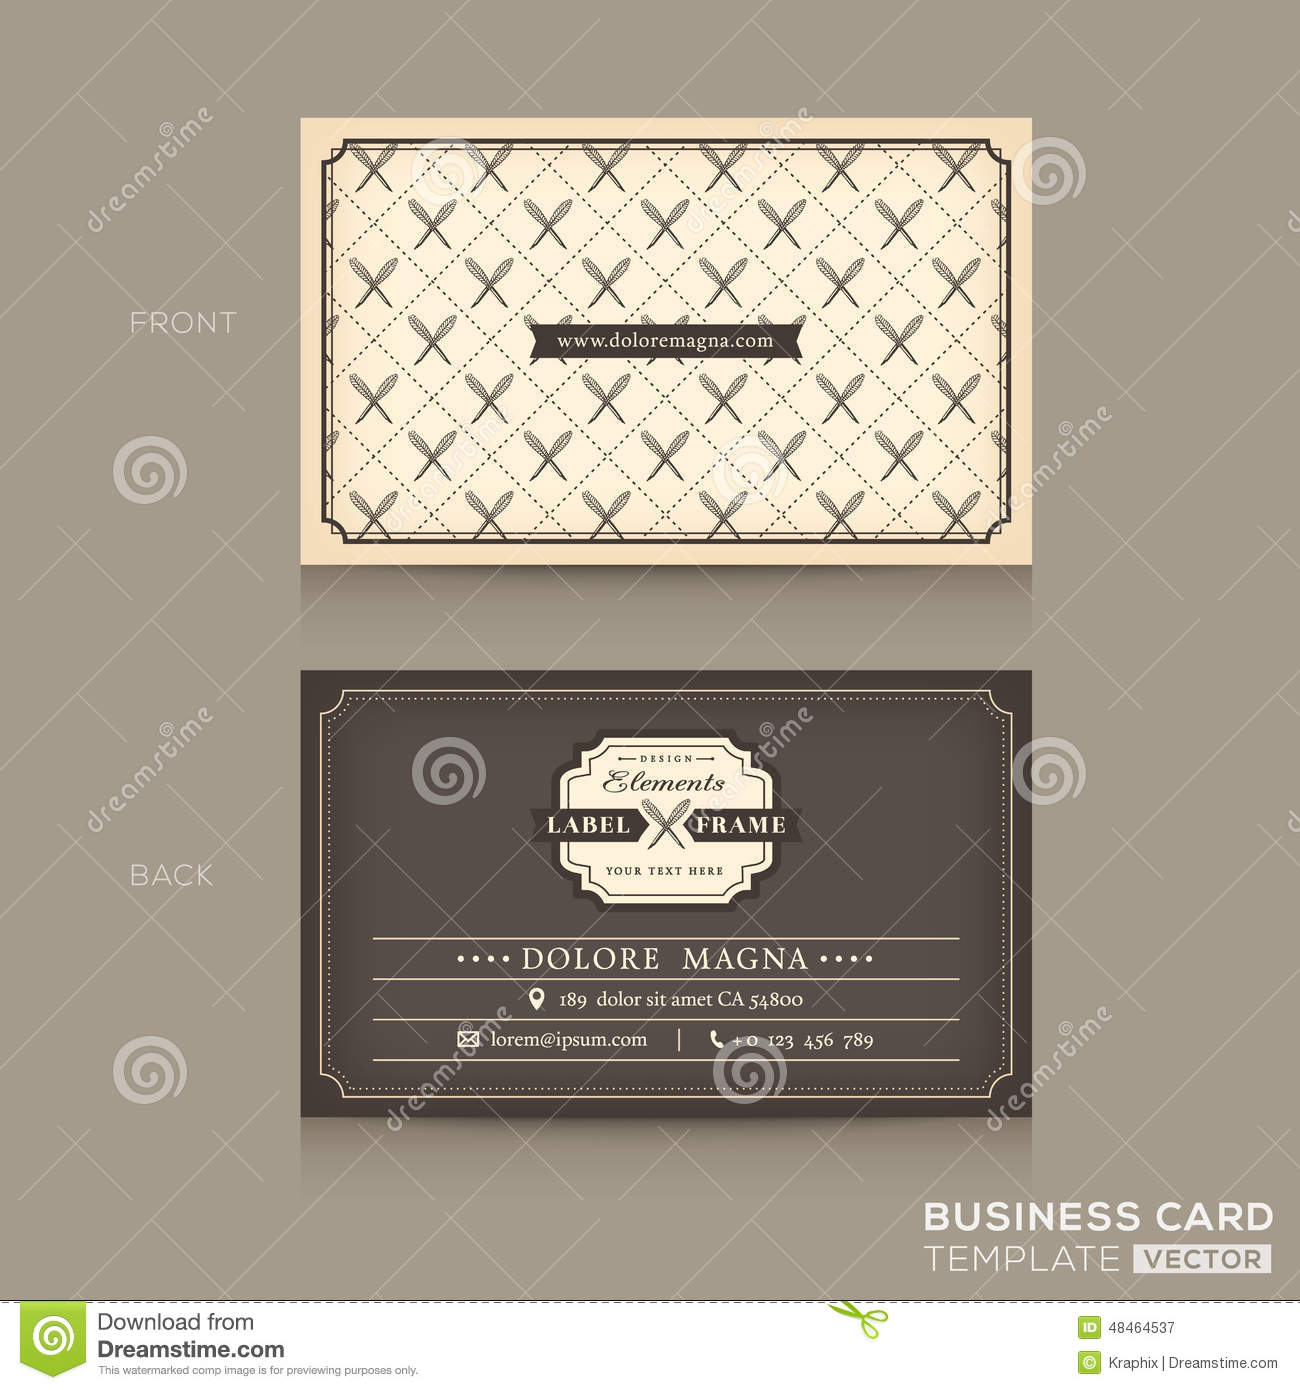 Classic Business Card Design Template Stock Vector - Illustration of ...